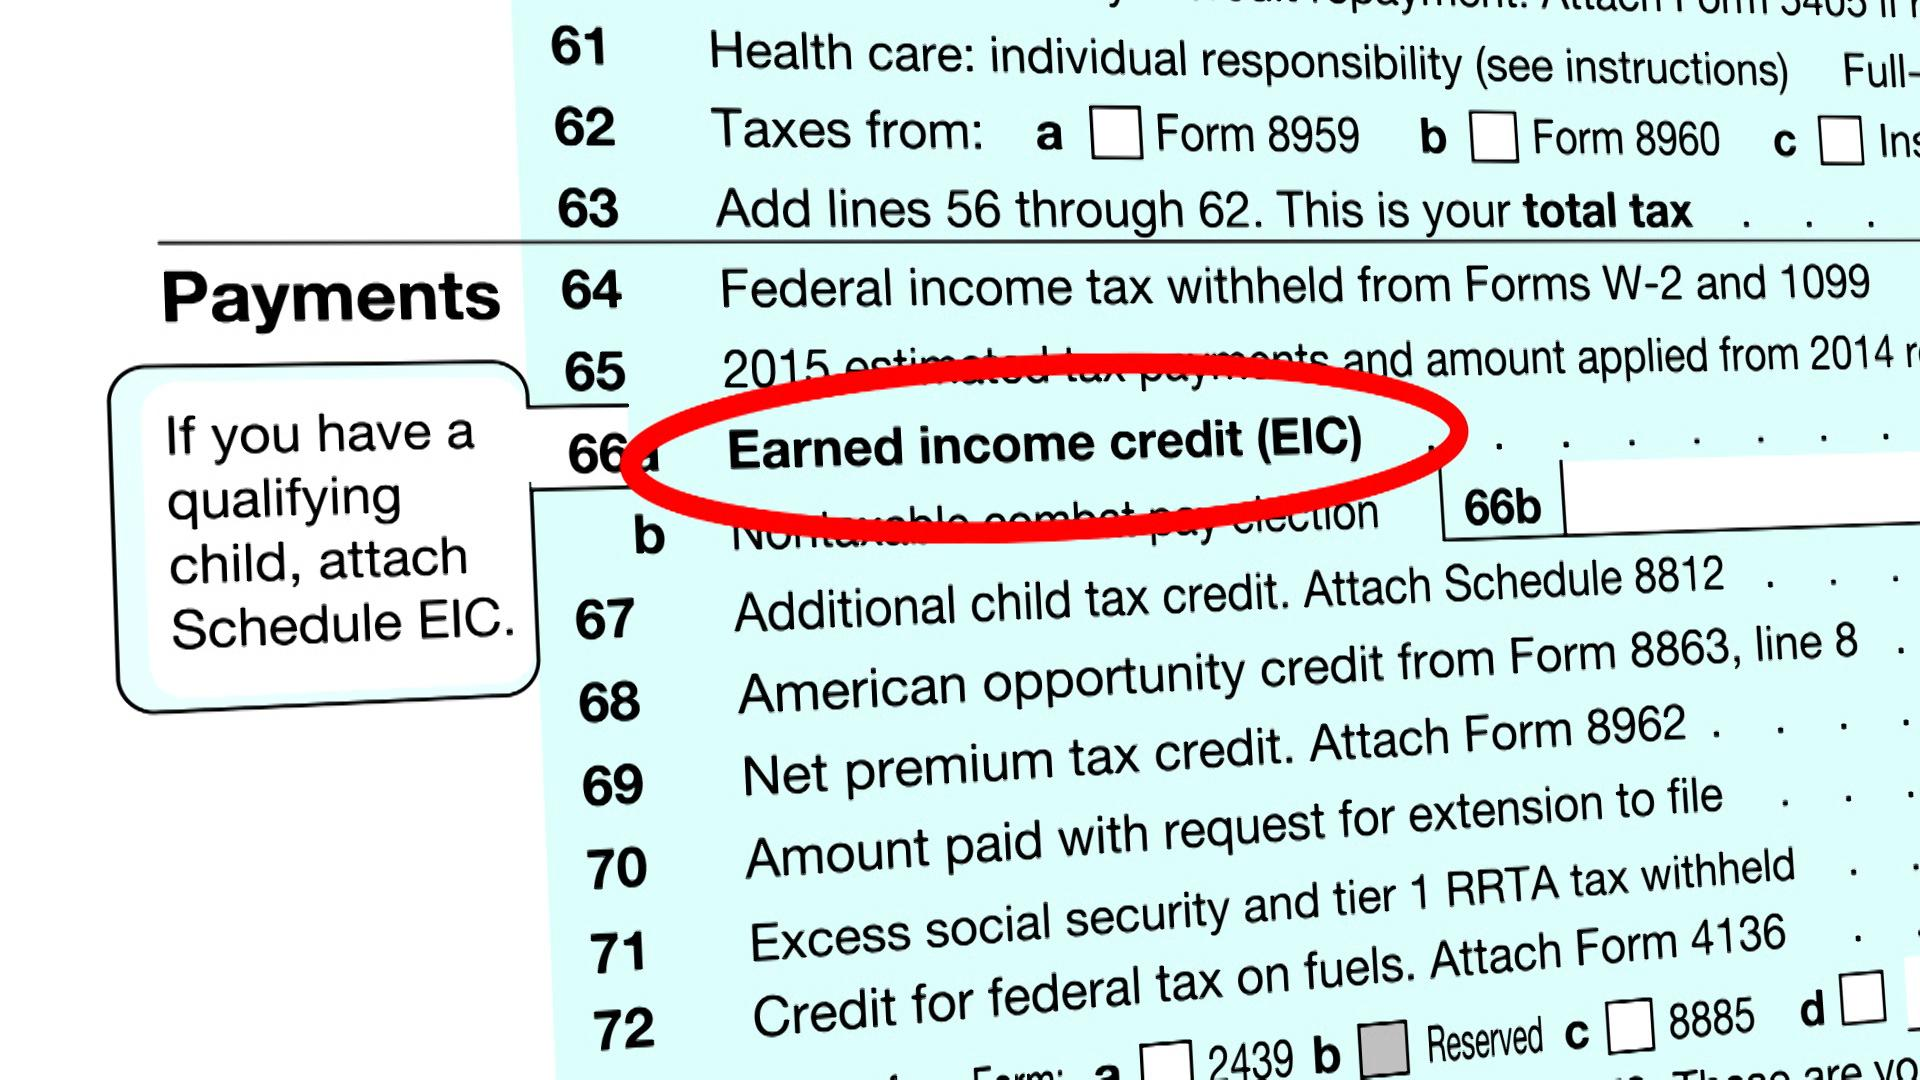 worksheet Earned Income Credit Eic Worksheet claim the earned income tax credit consumer reports play